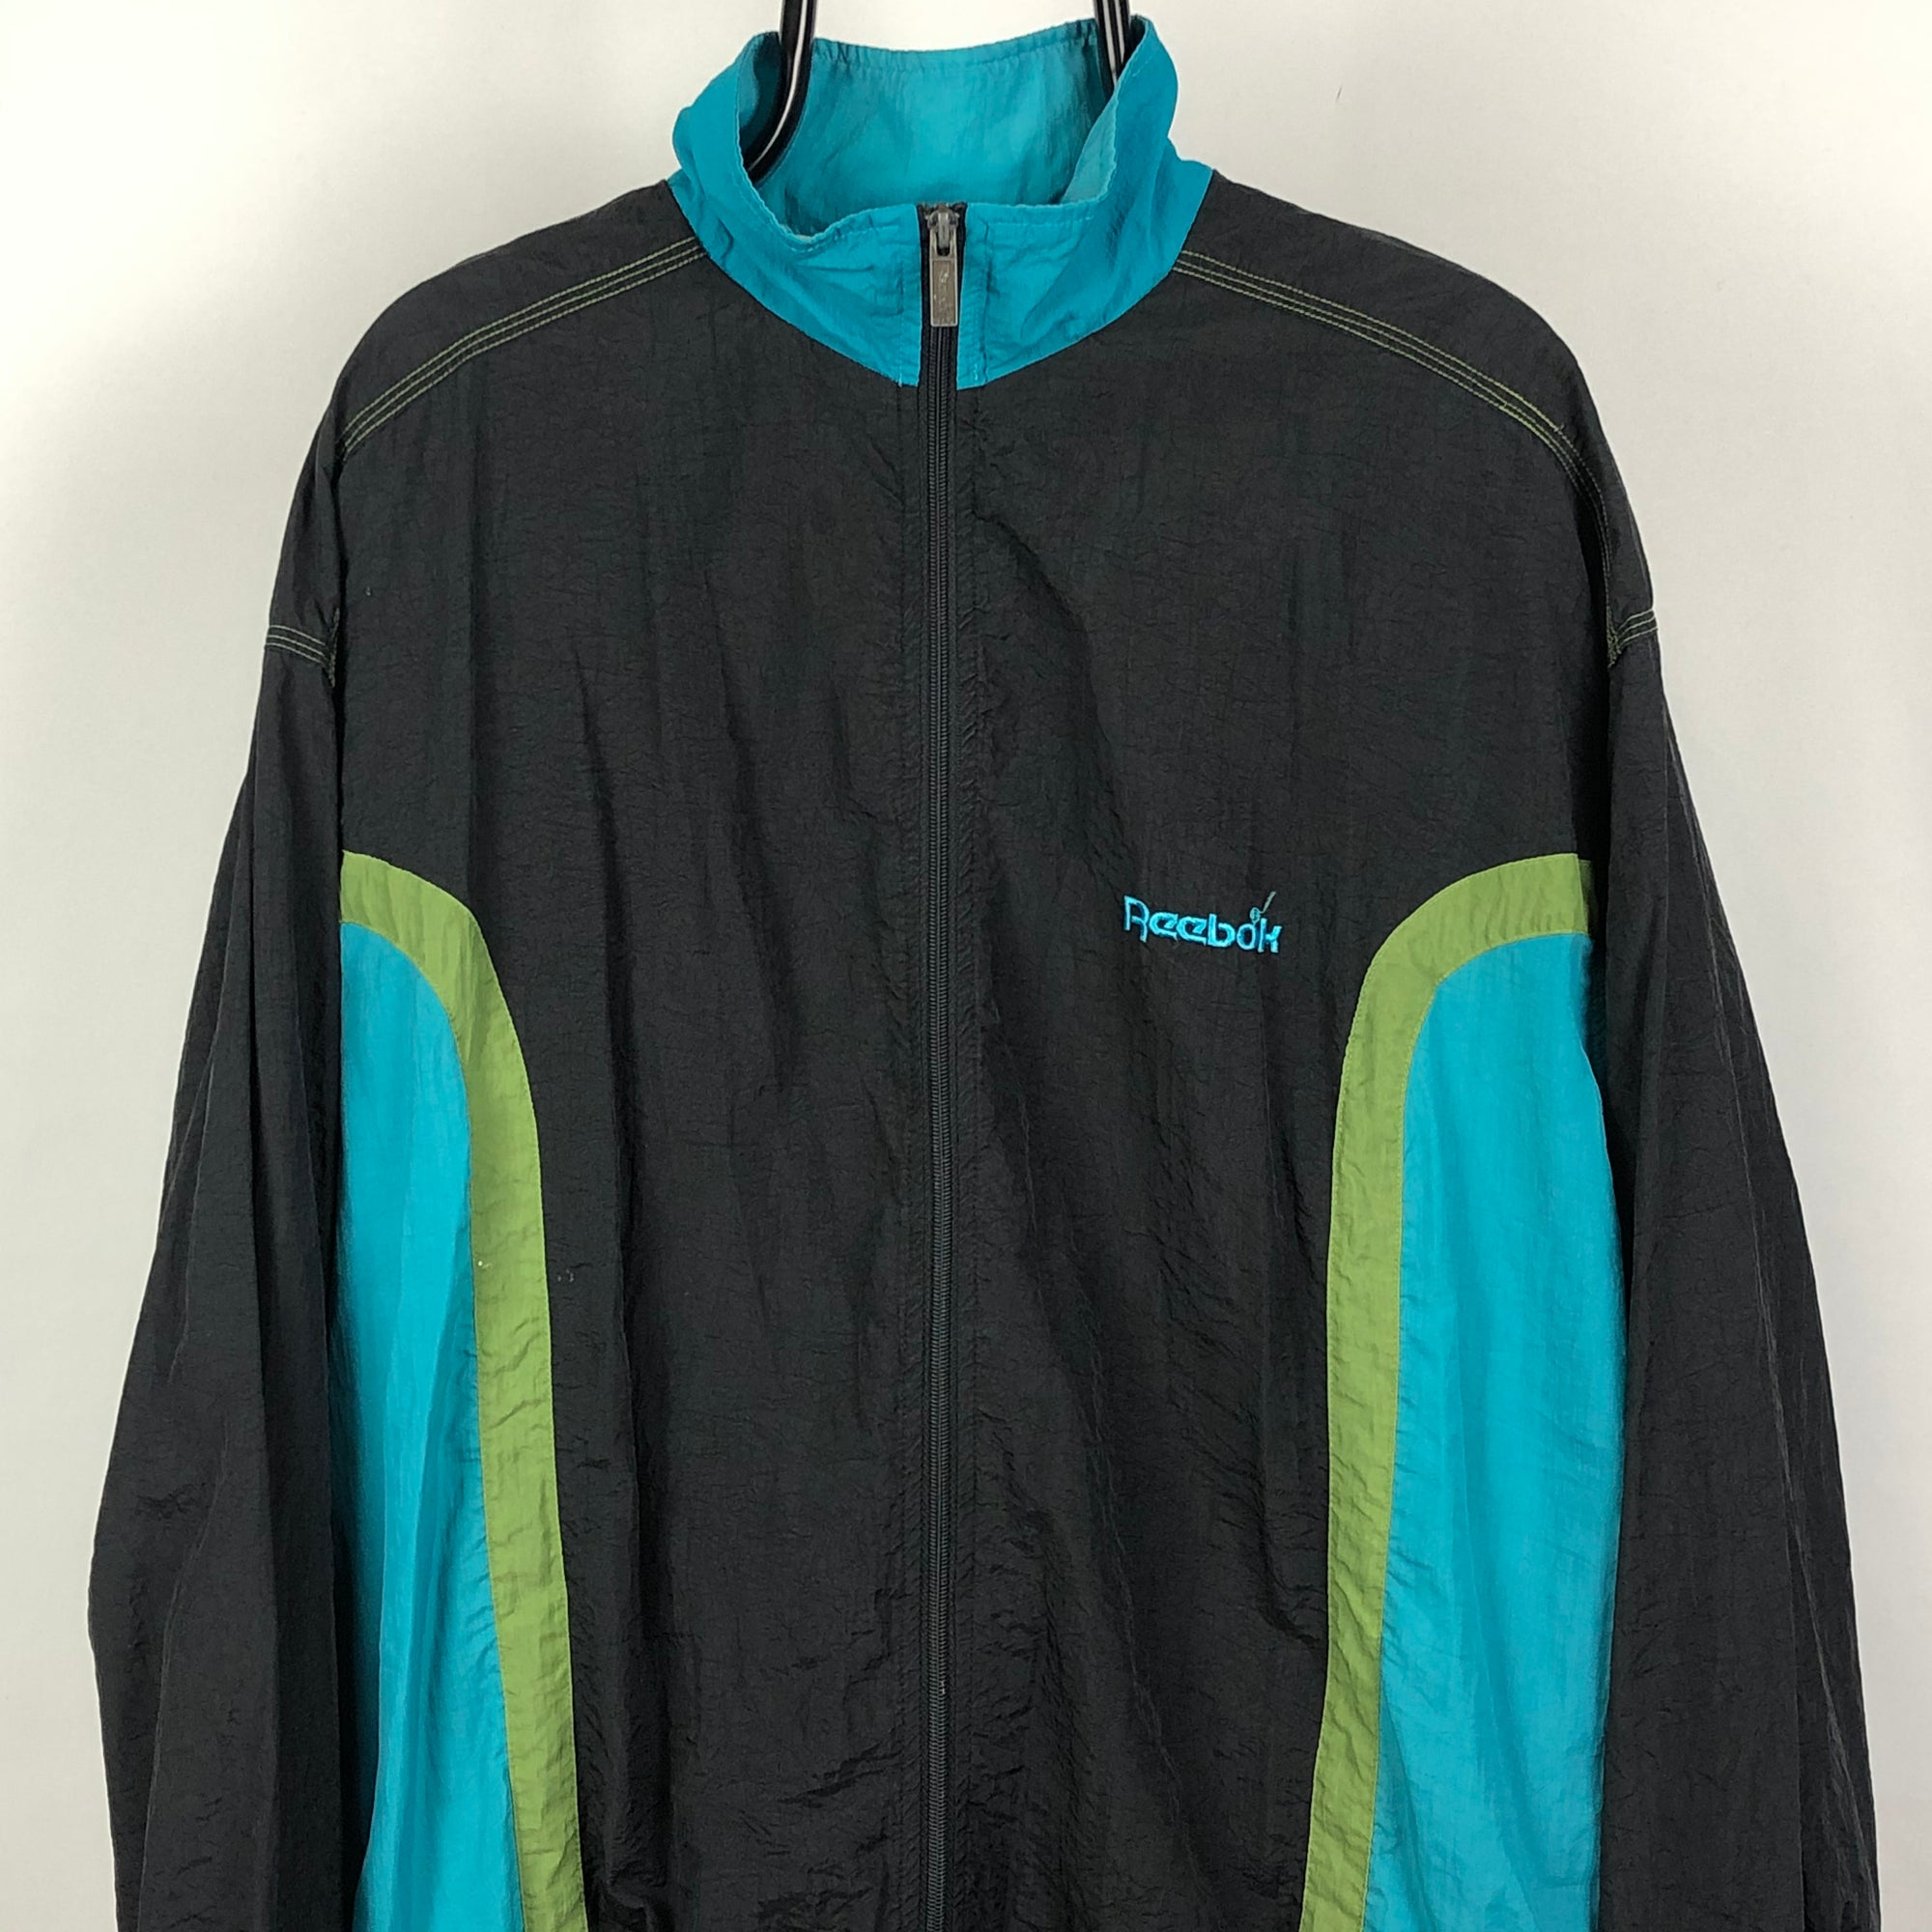 Vintage Reebok Spellout Track Jacket in Turquoise/Green - Men's Large/Women's XL